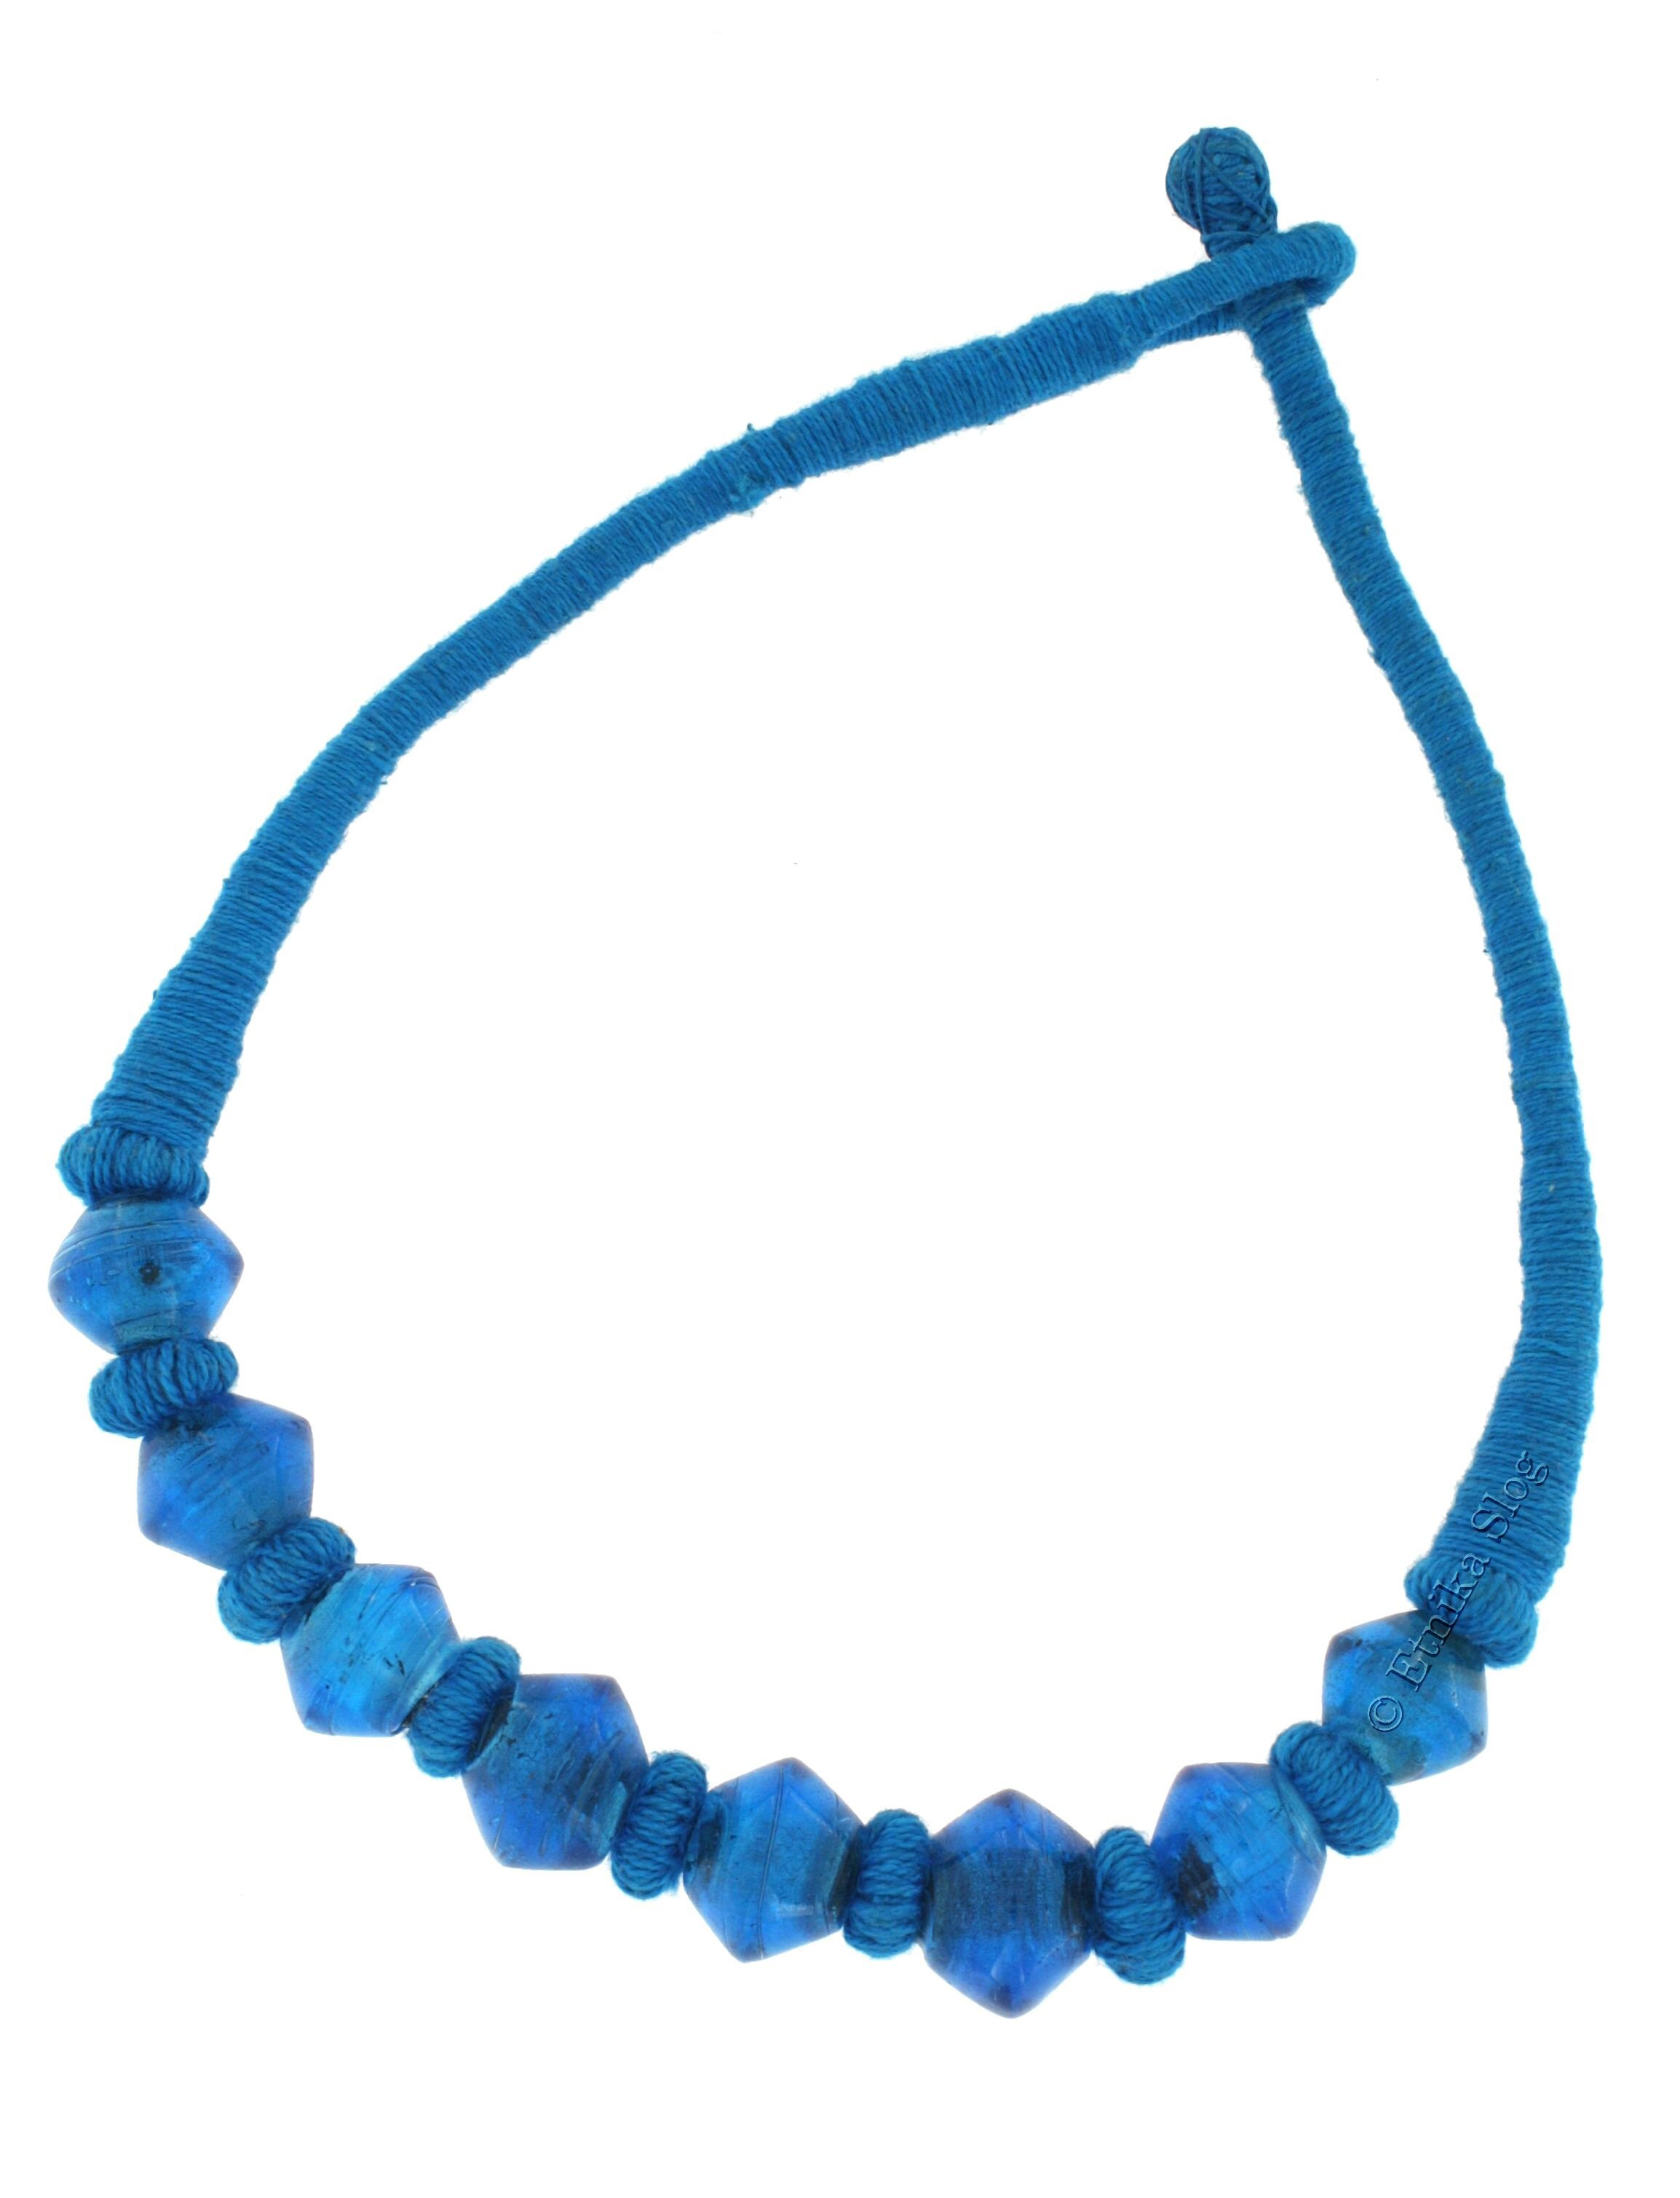 NECKLACES - GLASS VE-CL21-01 - Oriente Import S.r.l.